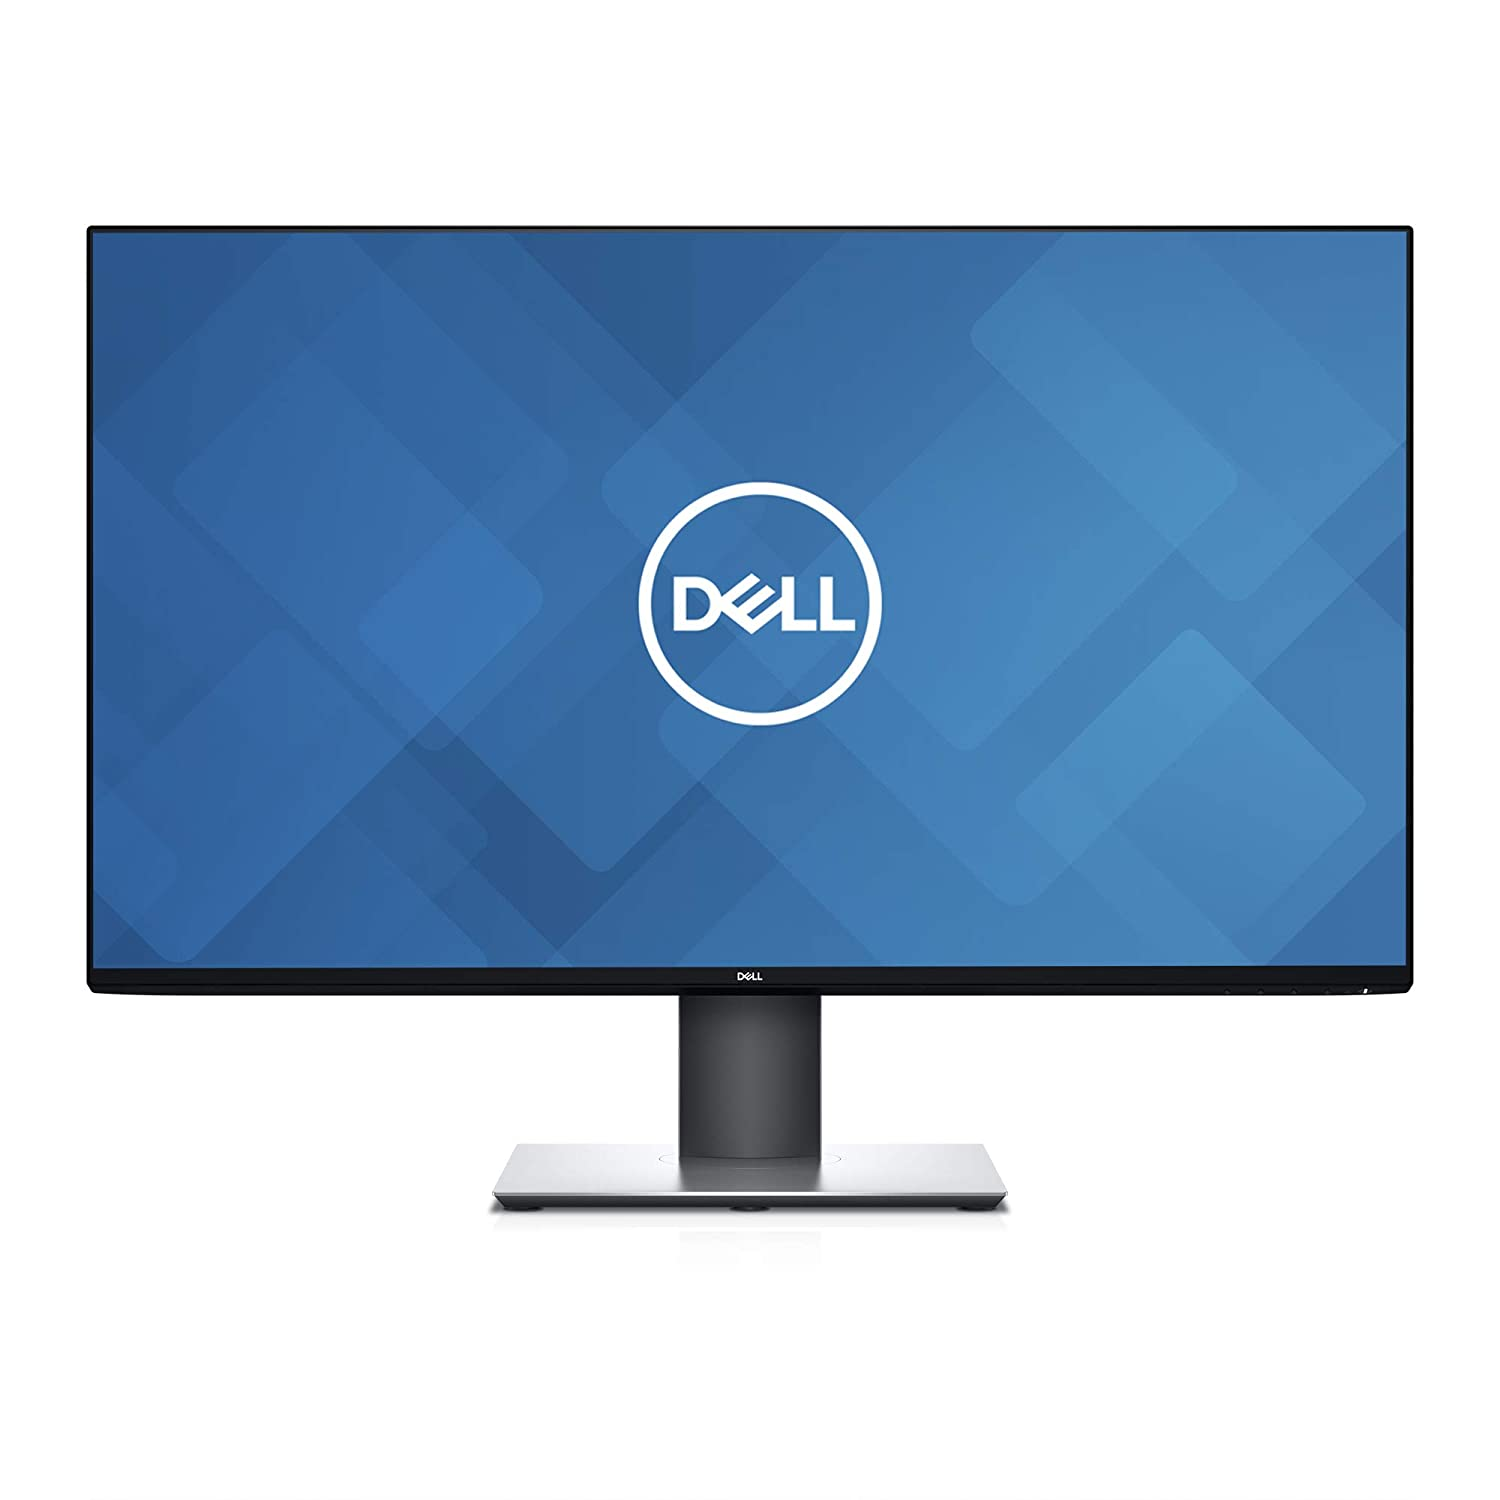 Dell U-Series 32-Inch Screen LED-Lit Monitor (U3219Q), Black